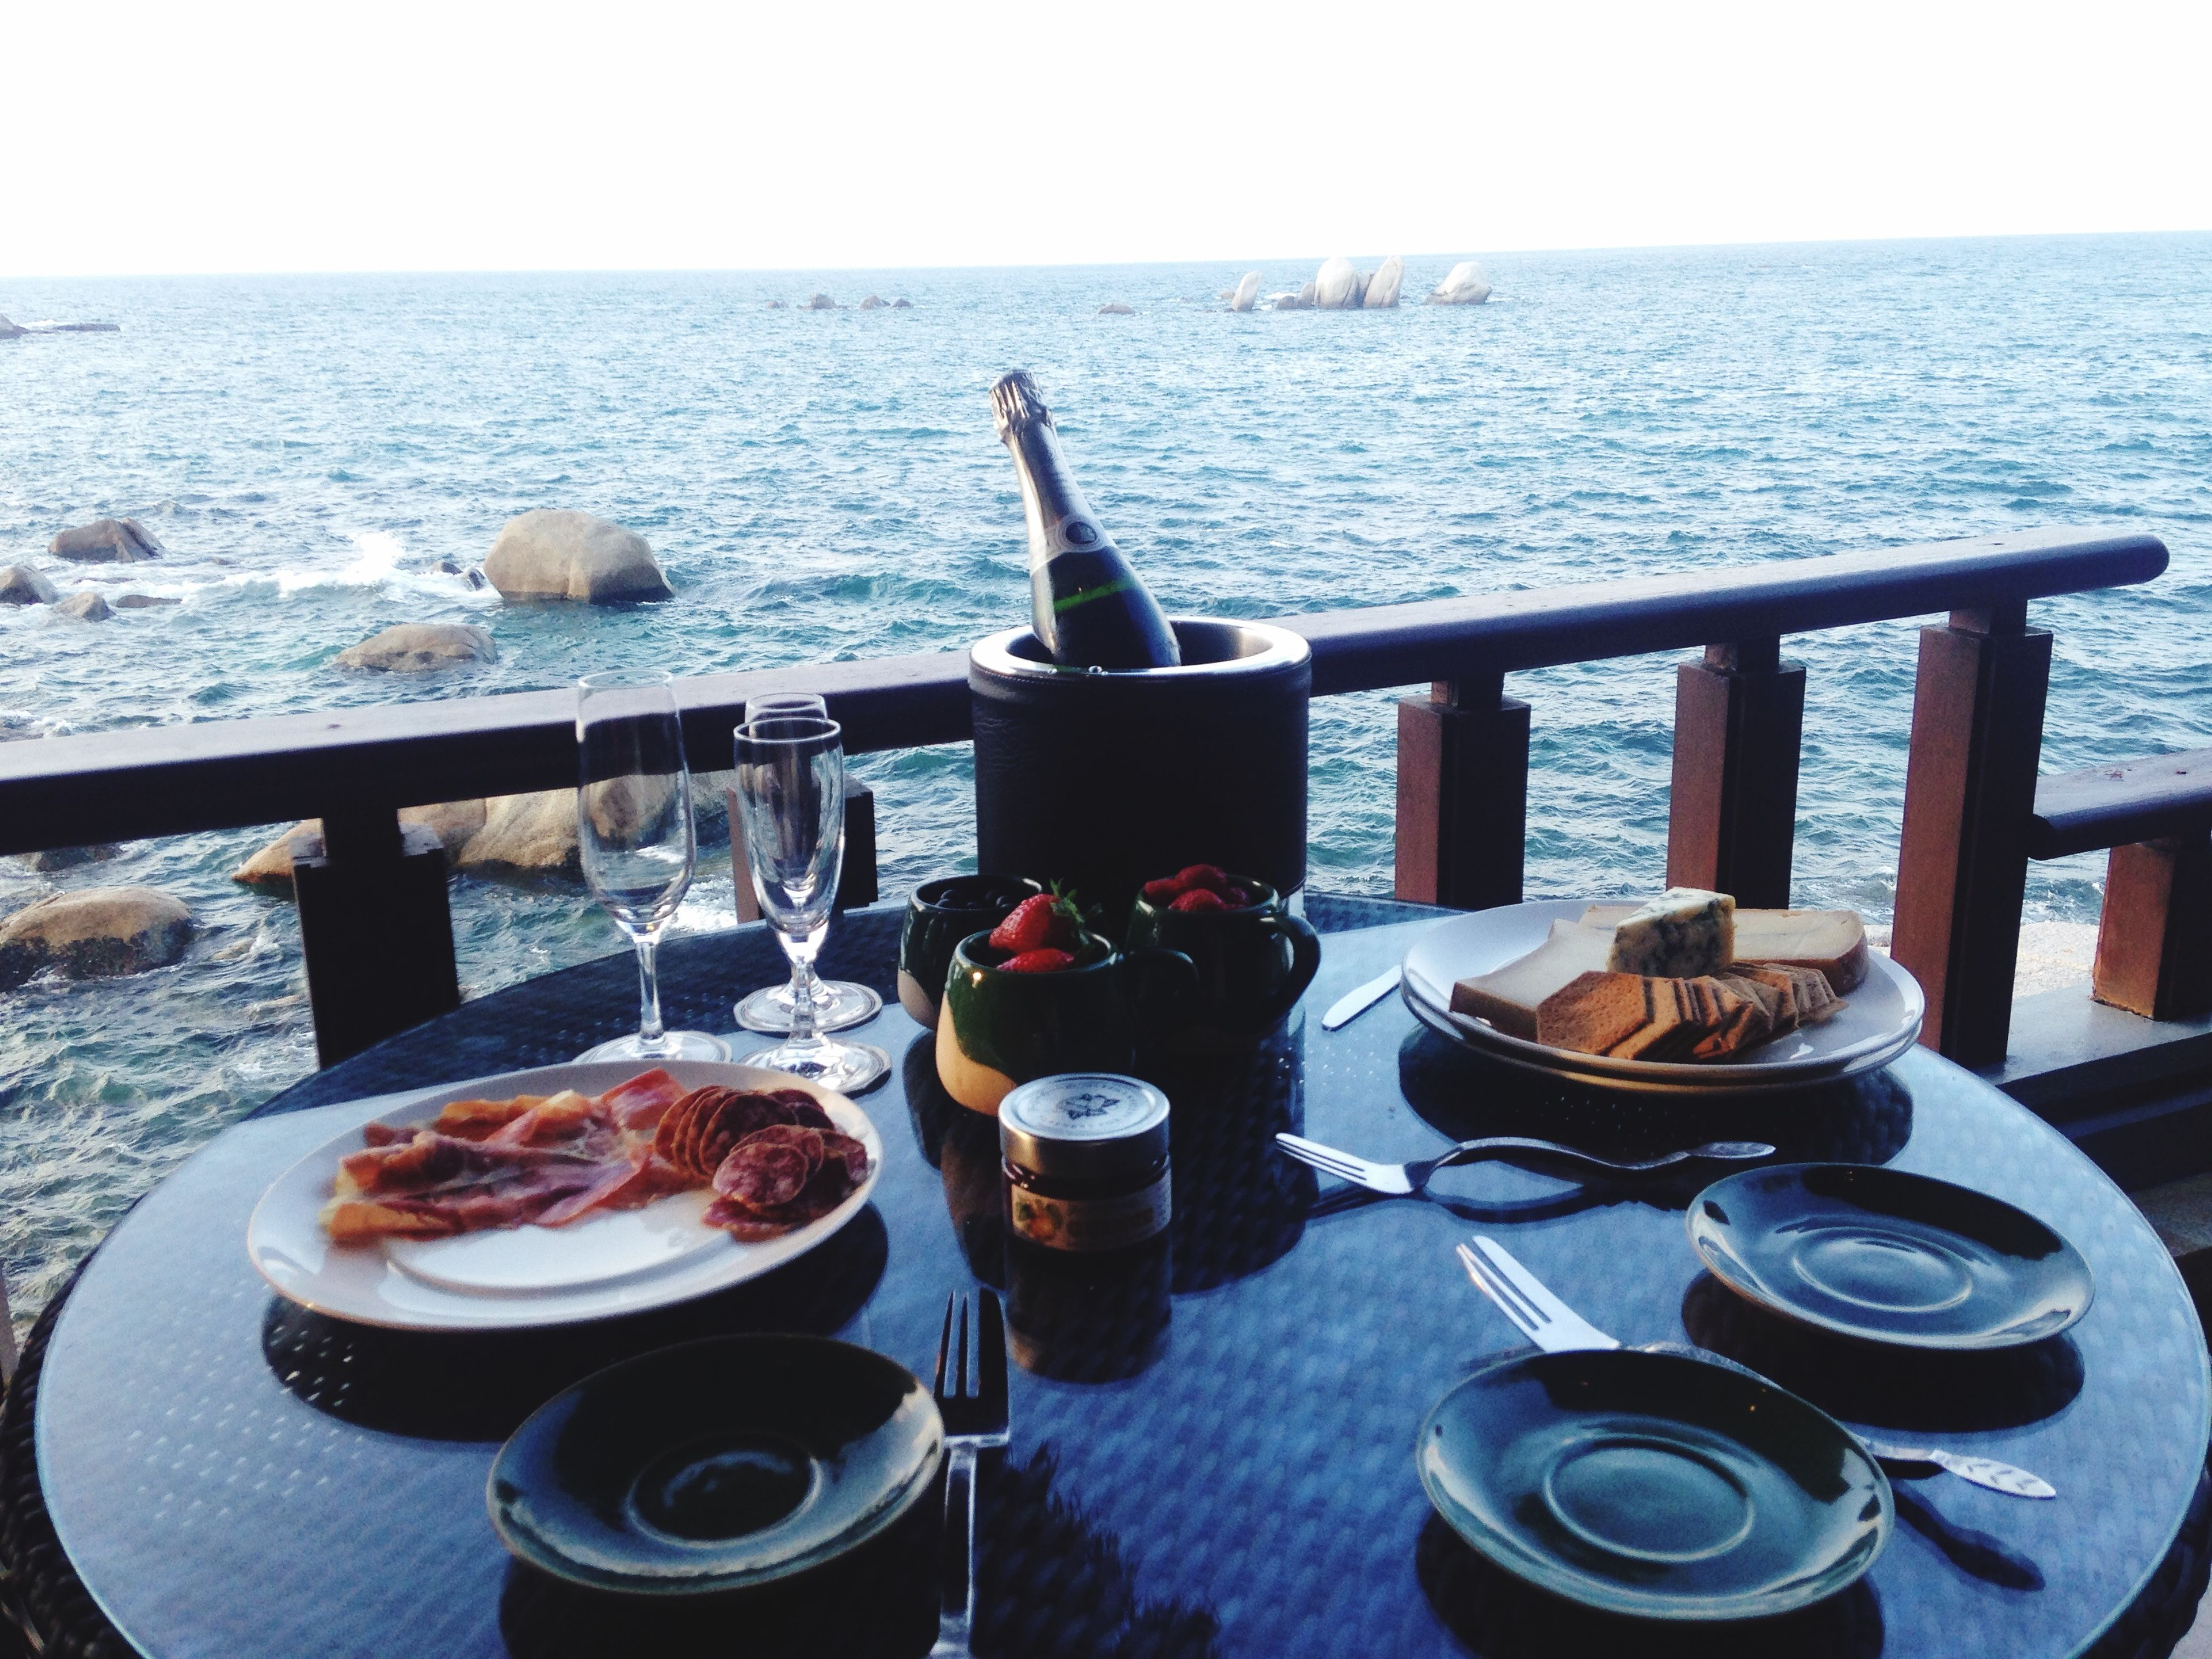 food and drink, table, sea, drink, freshness, food, water, refreshment, horizon over water, plate, coffee cup, restaurant, lifestyles, healthy eating, coffee - drink, ready-to-eat, day, breakfast, men